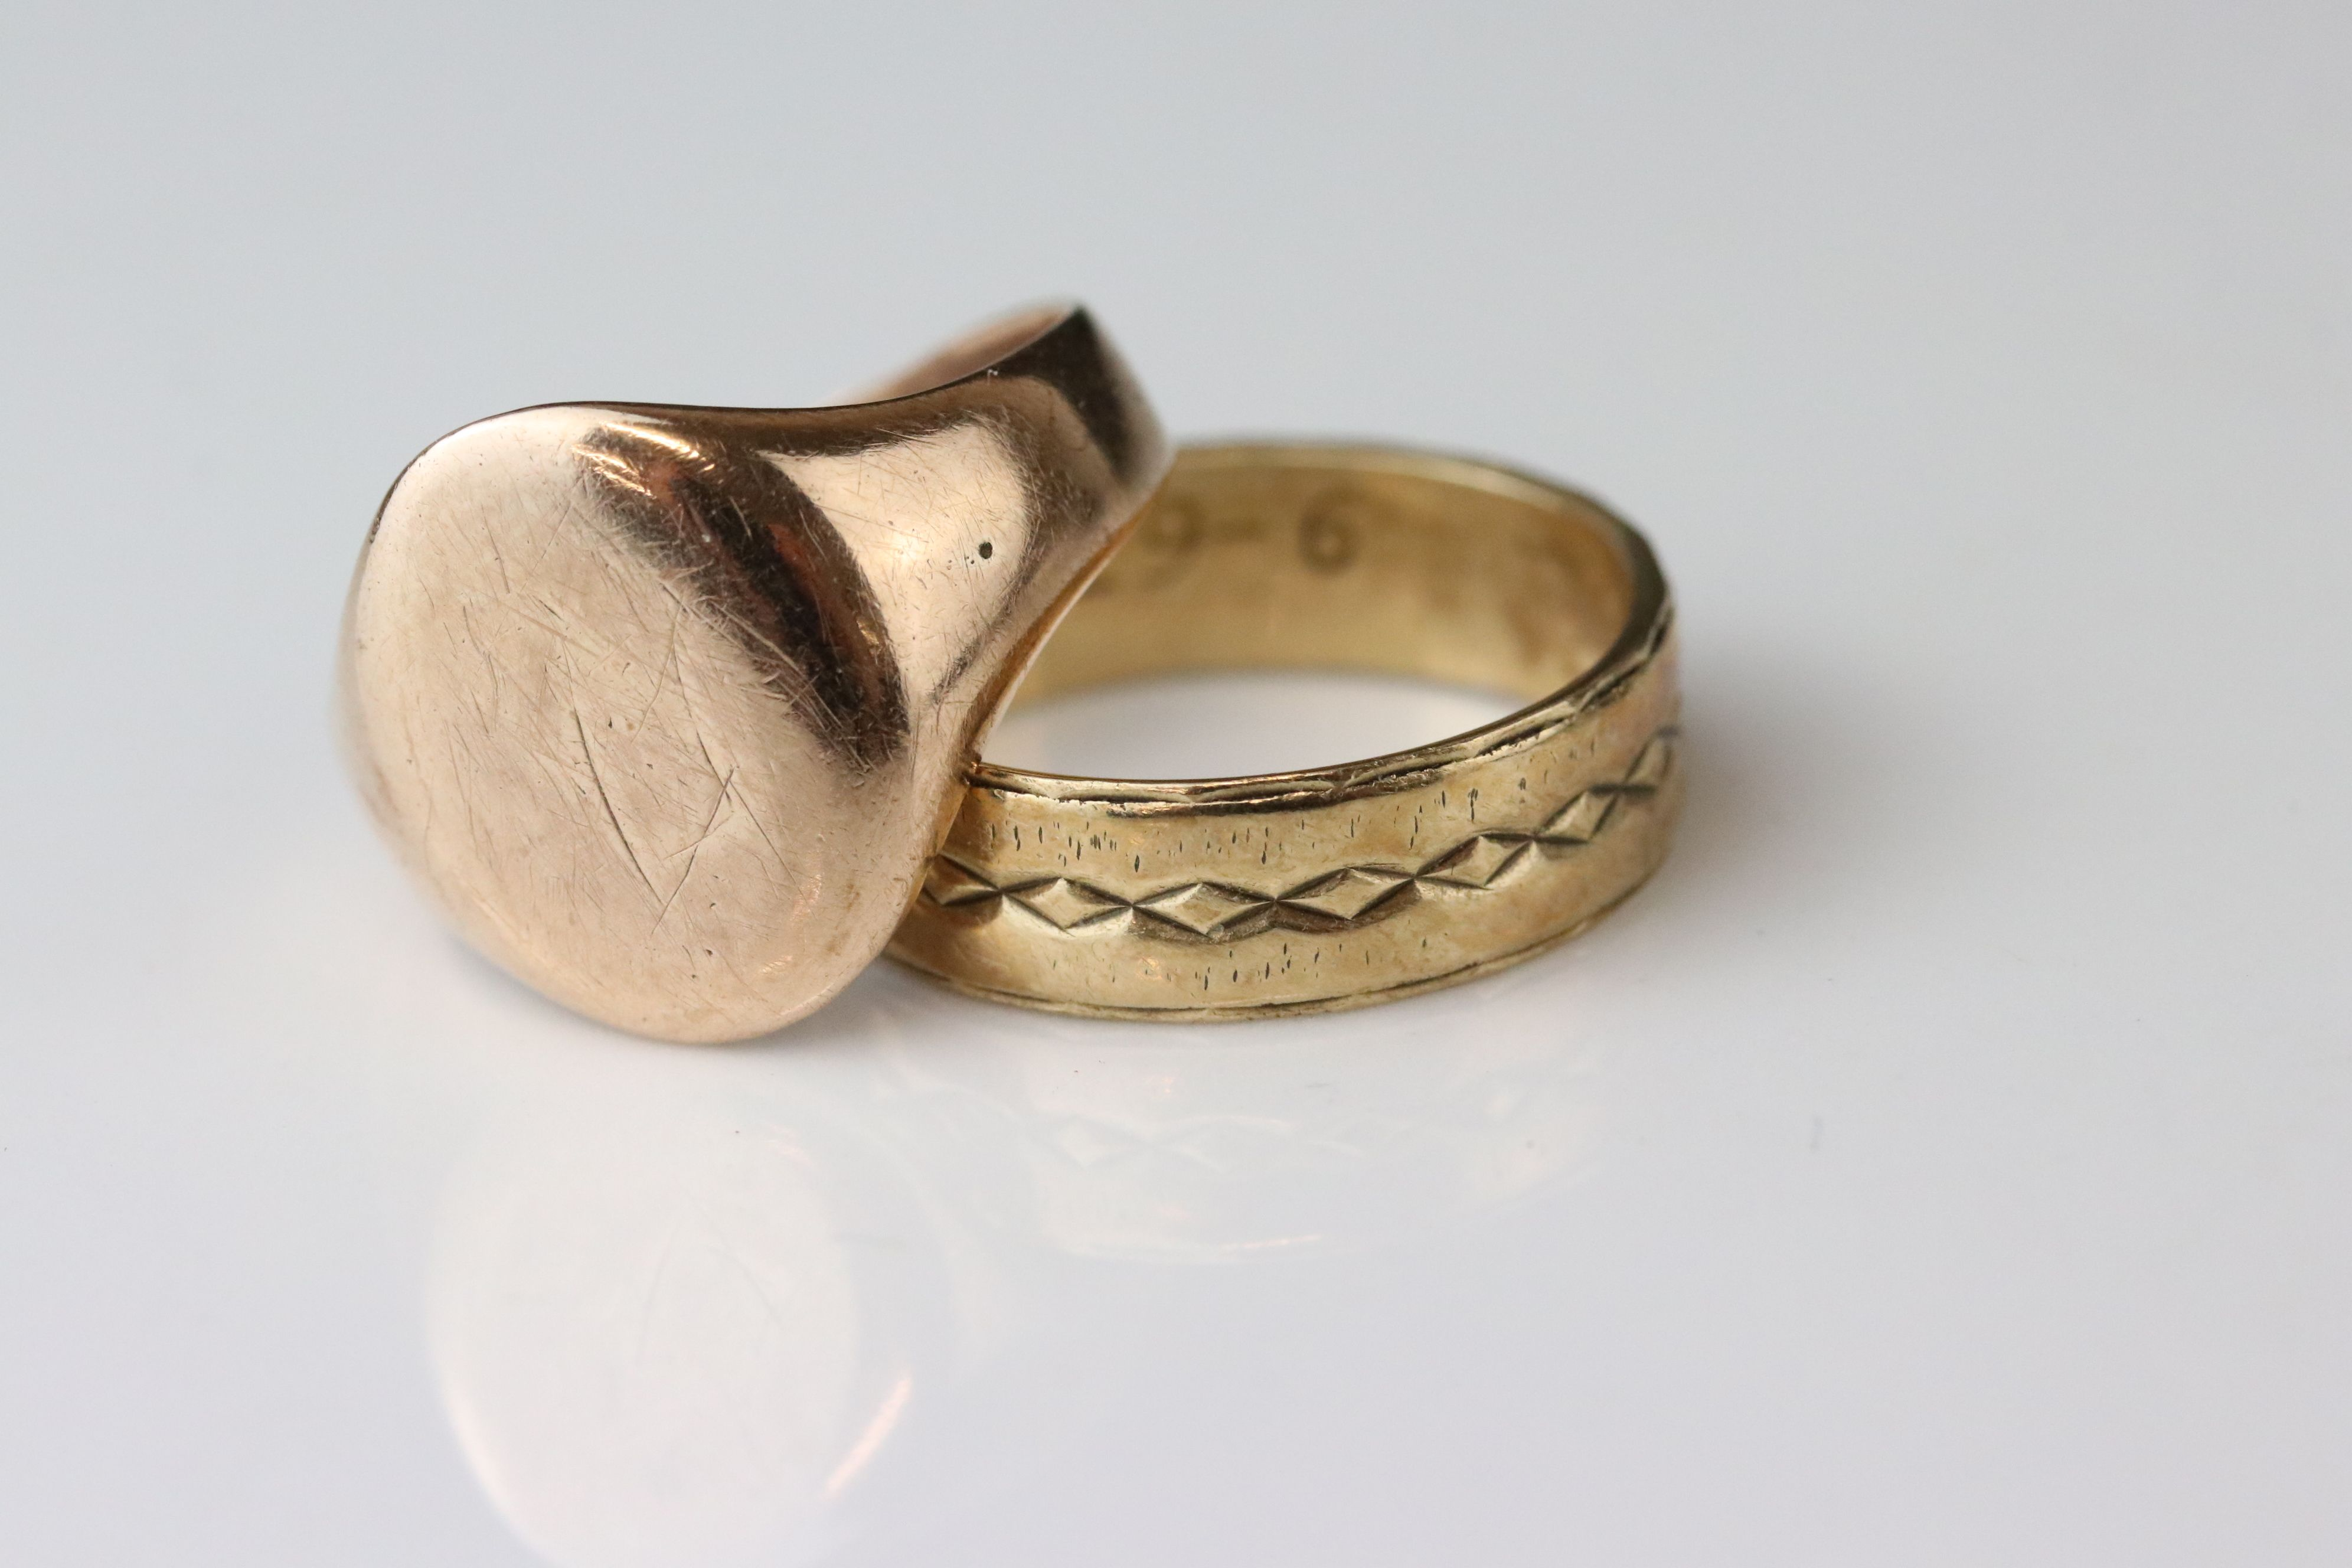 Rose gold signet ring, assessed as 9ct gold, oval panel (possibly with extremely rubbed monogram),